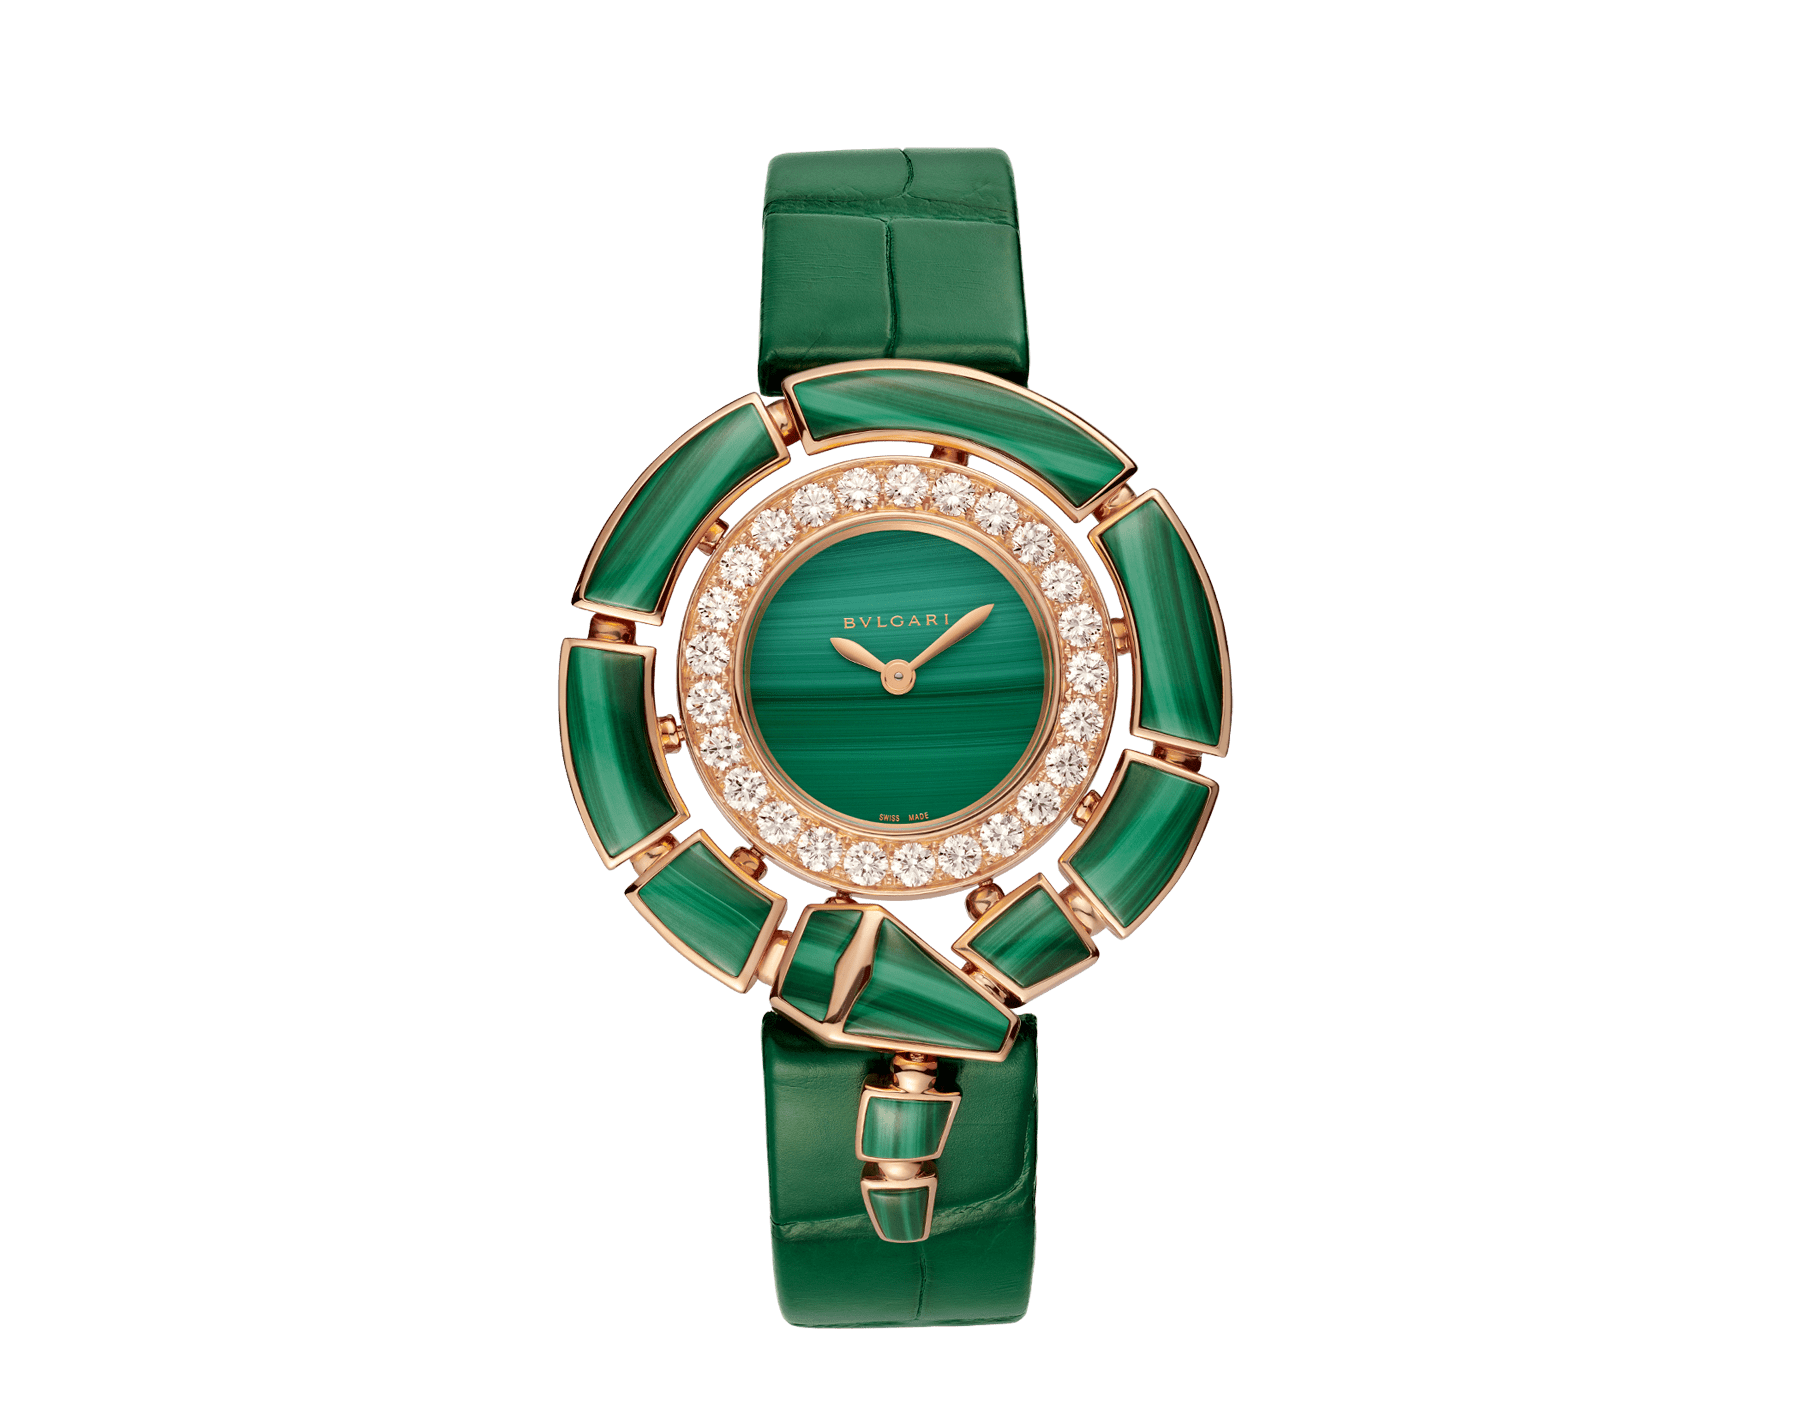 Serpenti Incantati watch with 18 kt rose gold case set with brilliant-cut diamonds and malachite elements, malachite dial and green alligator bracelet 102871 image 1